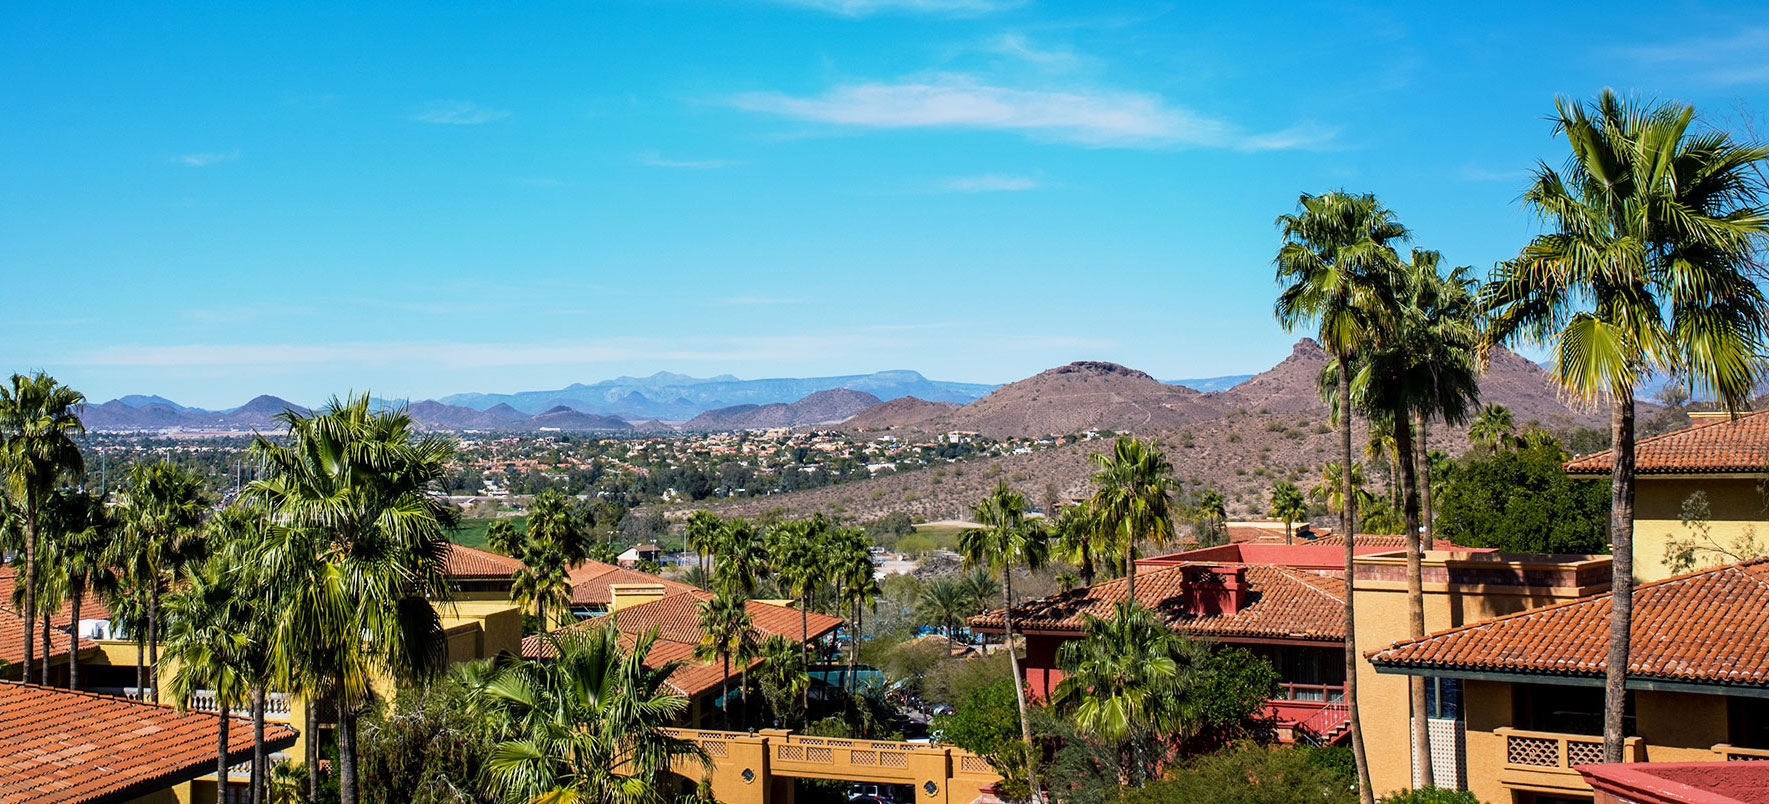 Views of the resort rooftops, mountains and palm trees